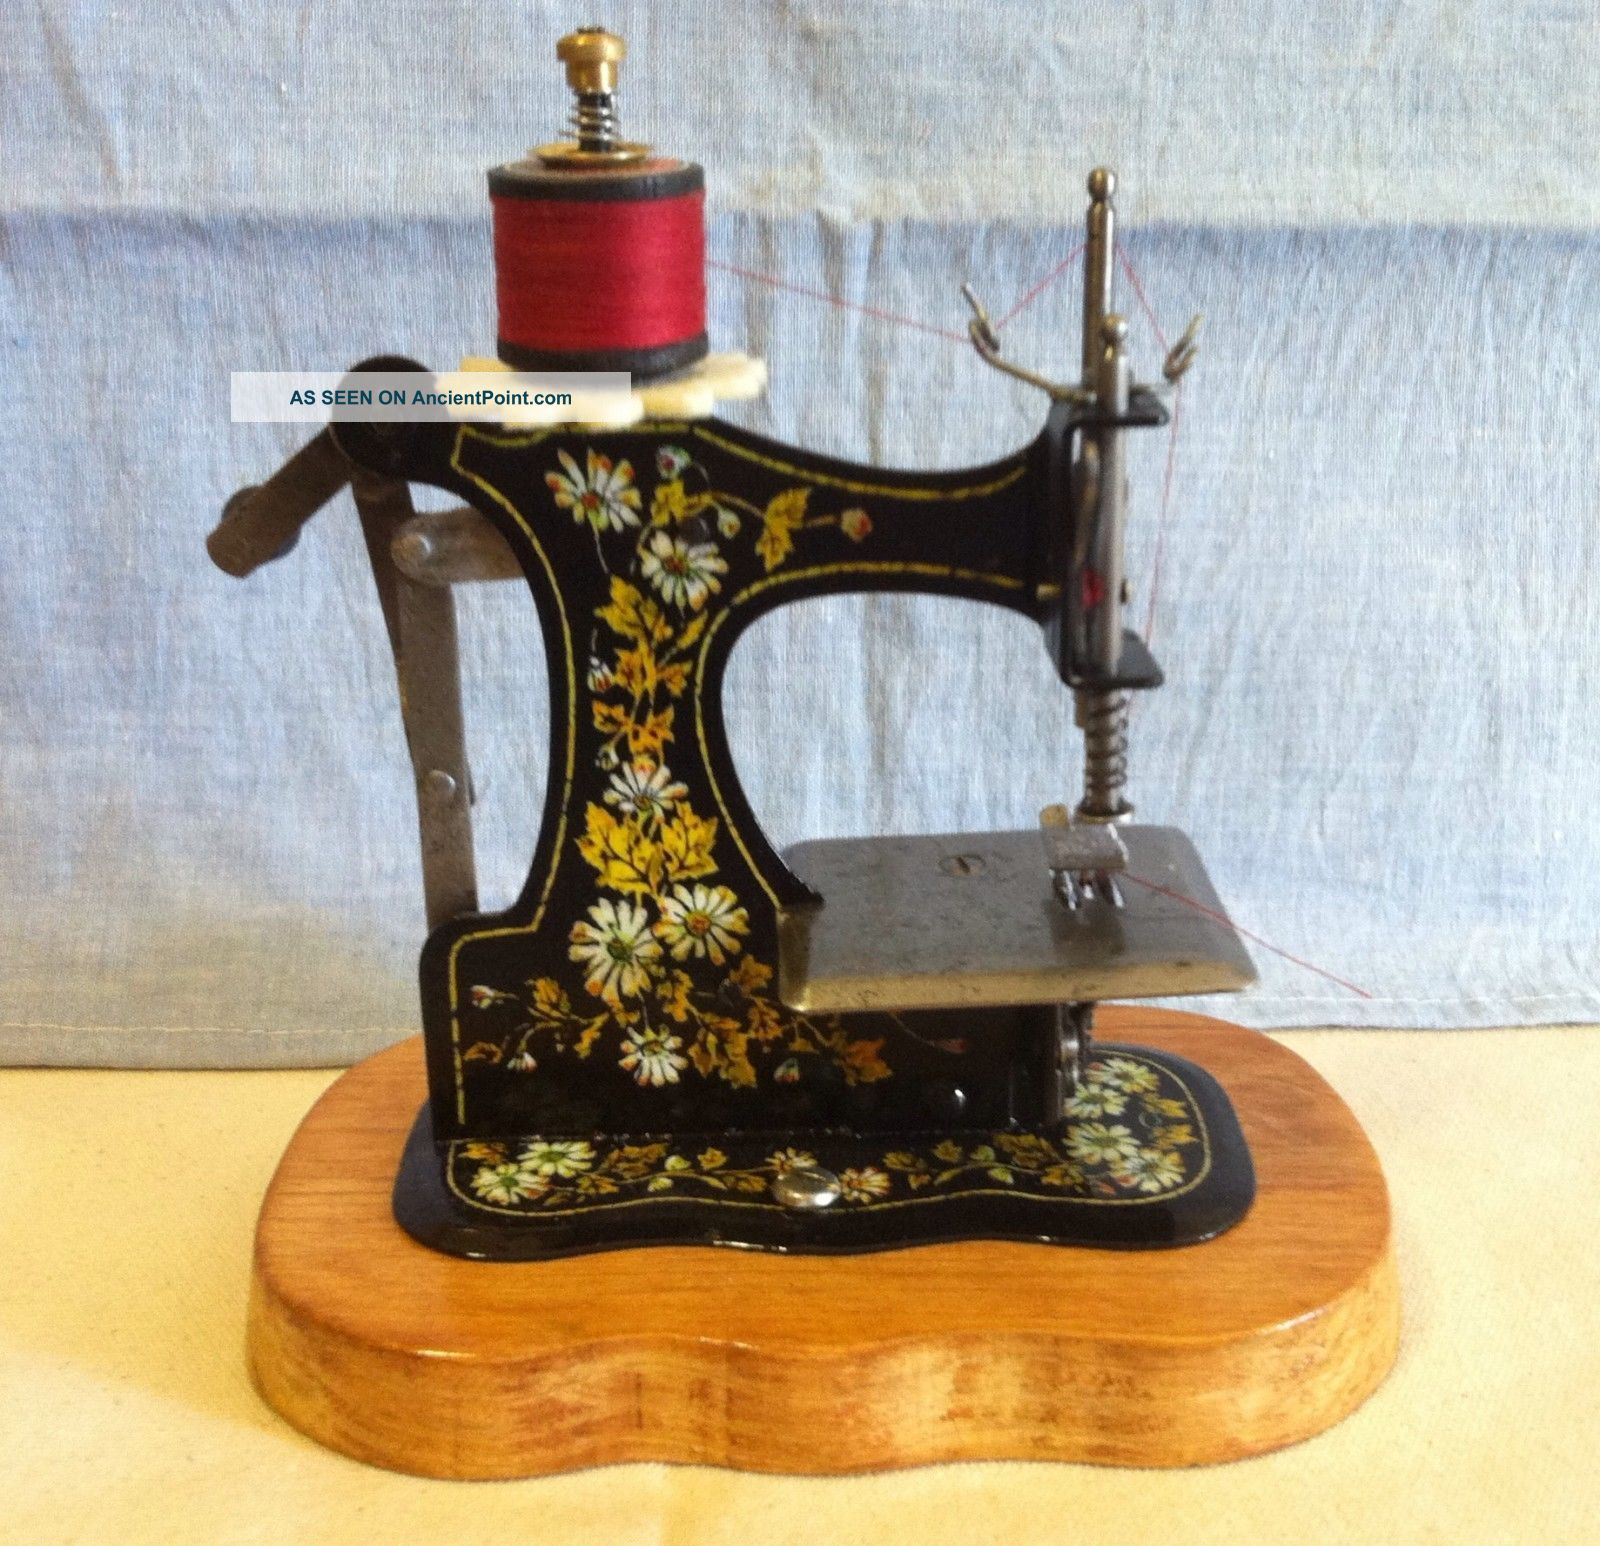 Antique 1900 Toy Sewing Machine - Muller F.  W.  - Model 1 Sewing Machines photo